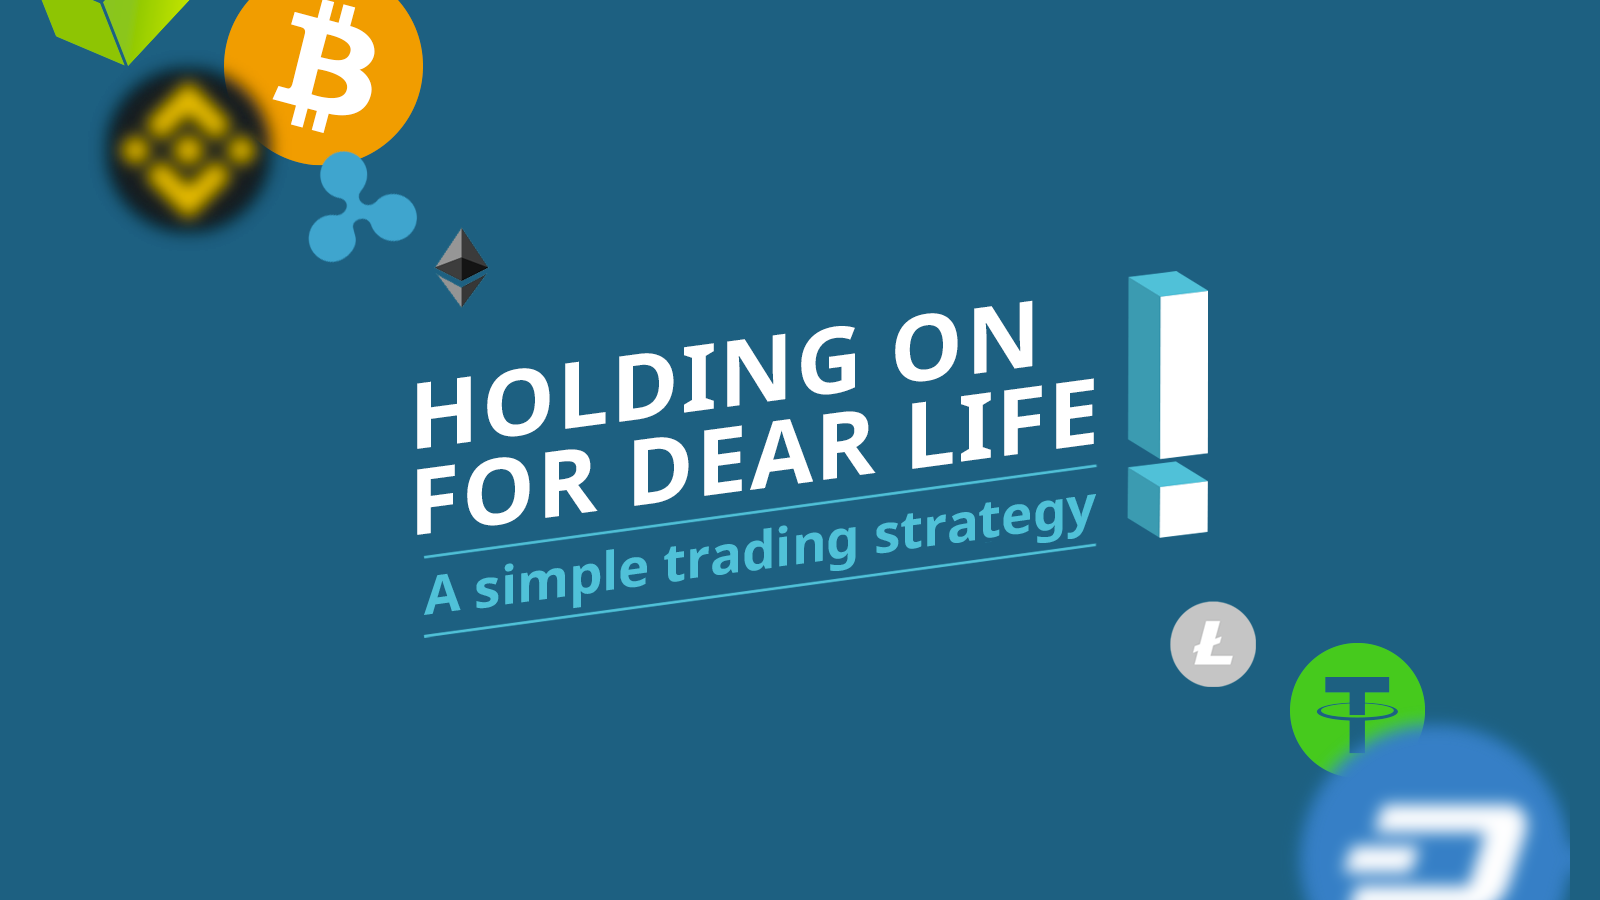 HODLING on for dear life: A simple trading strategy